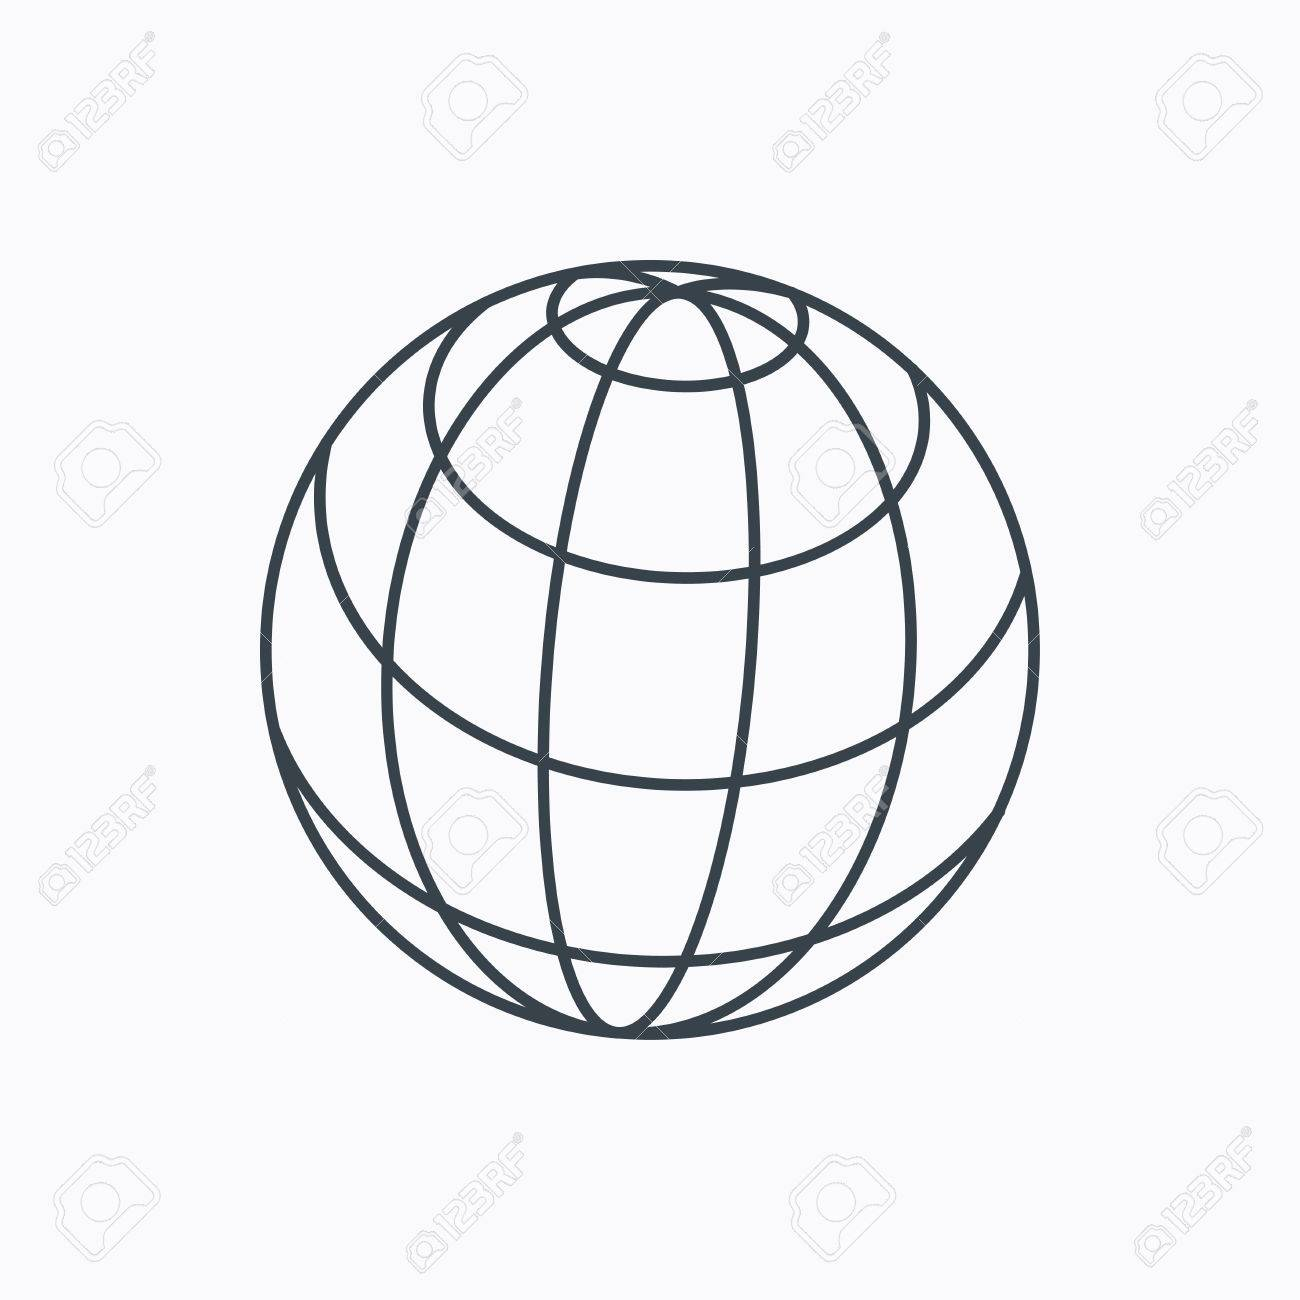 Globe Icon World Travel Sign Internet Network Symbol Linear Outline On White